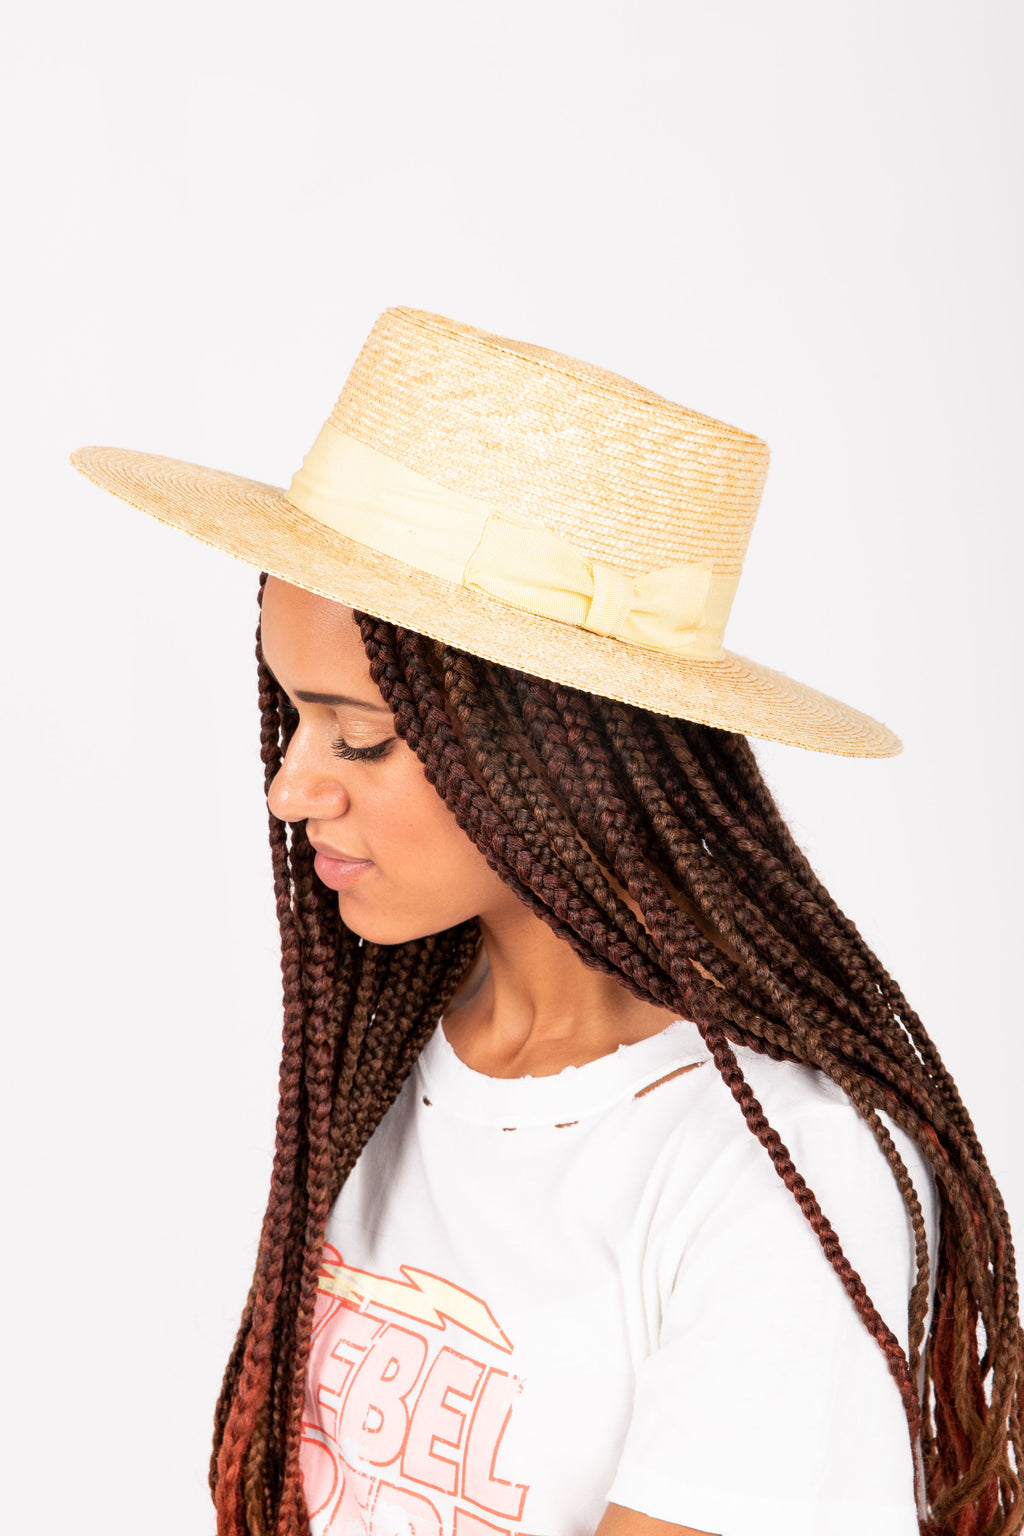 Hat No. 38: Straw Grossgrain Boater in Natural